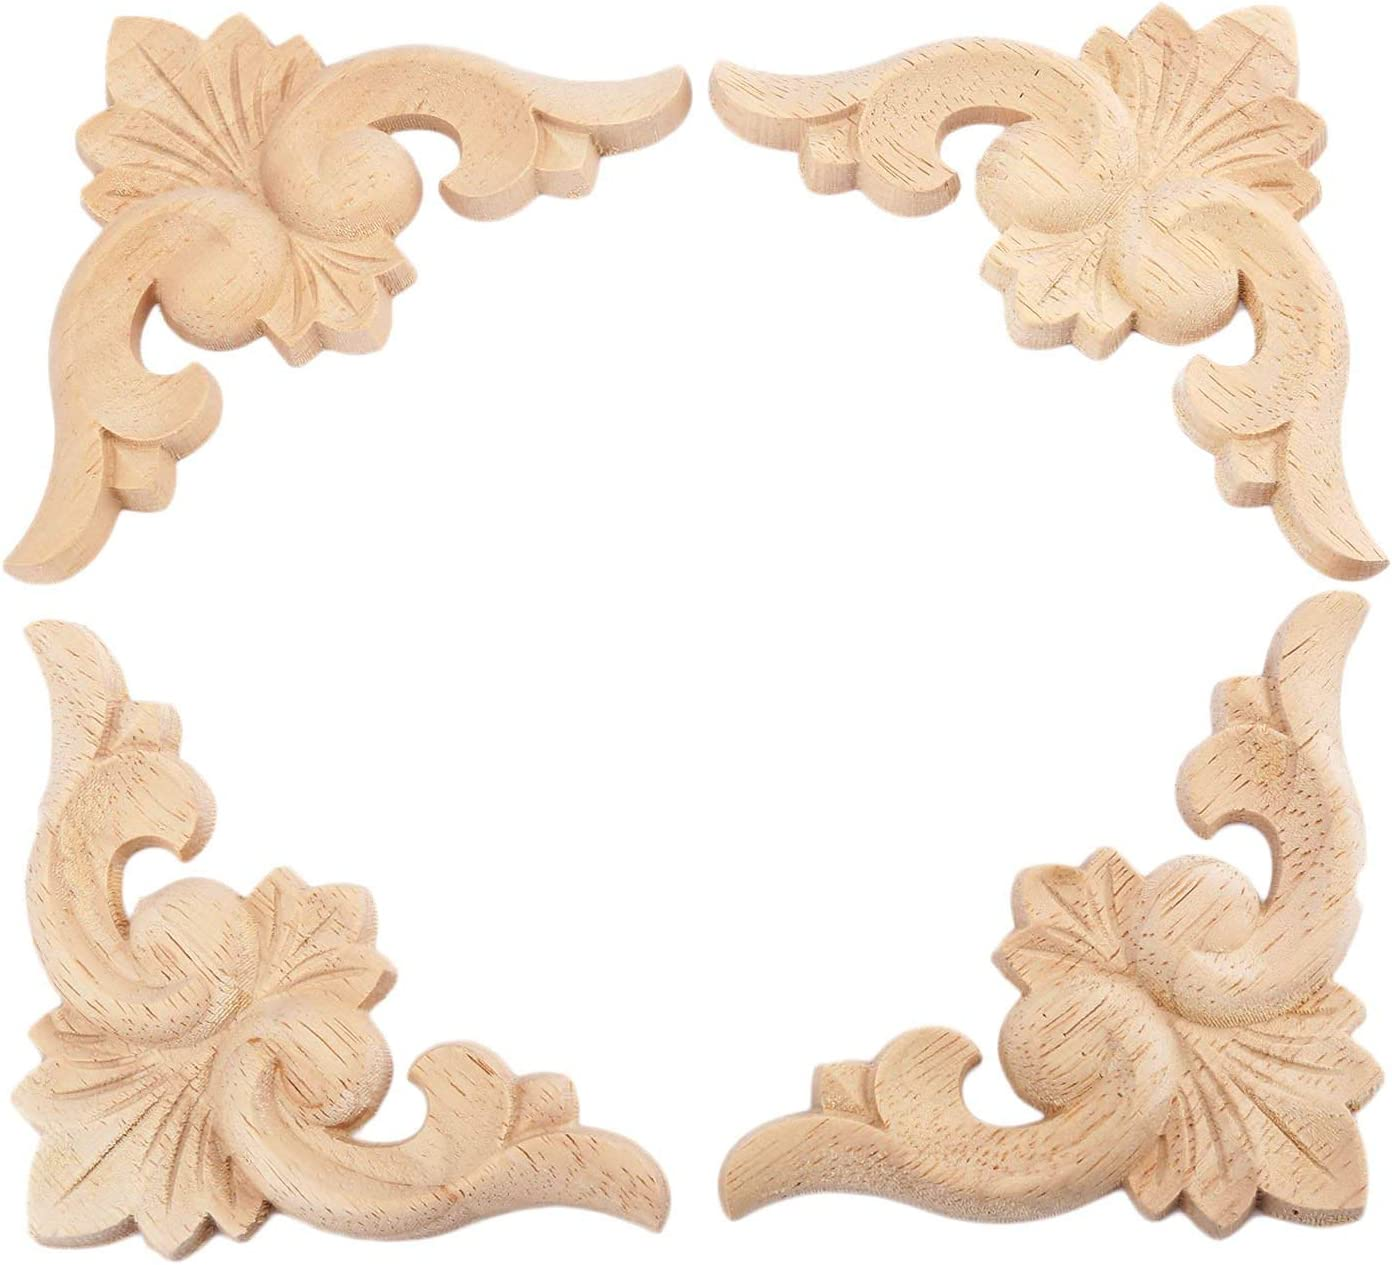 10-20cm Carved Wood Decal Applique Onlay Furniture Bookcase Cabinet Decor Round